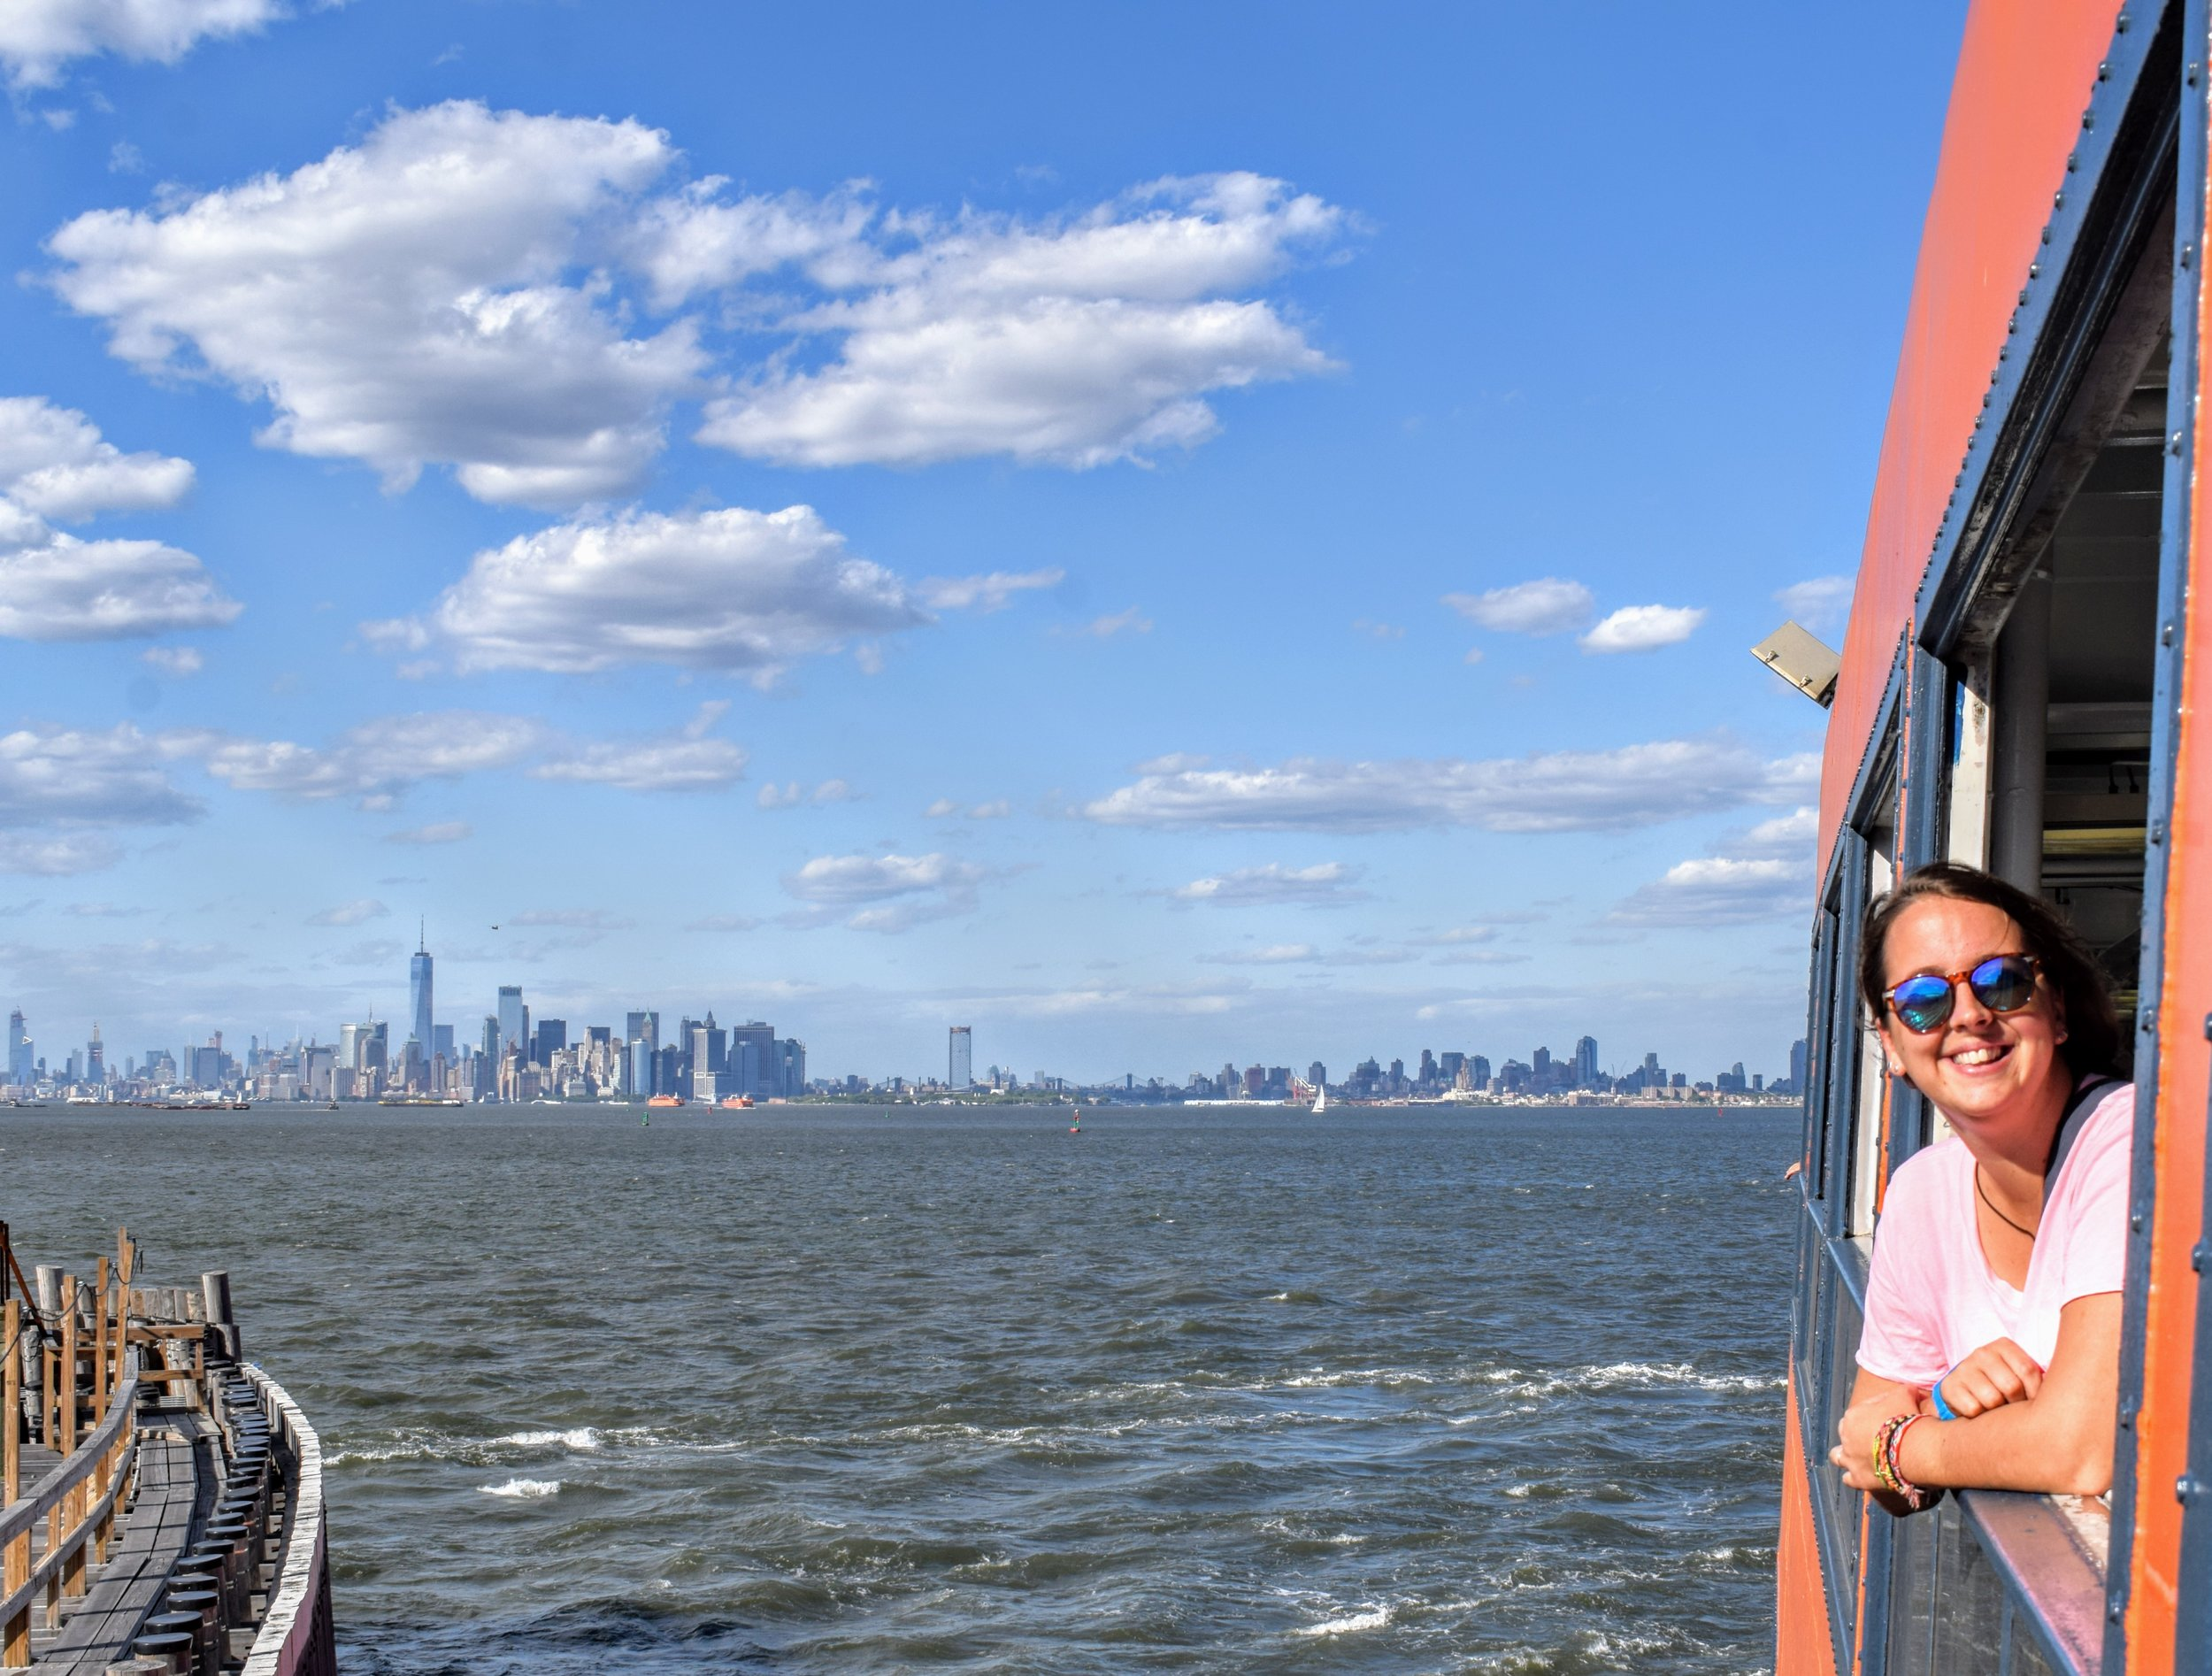 Yours truly loving the view of the city from the Staten Island Ferry.